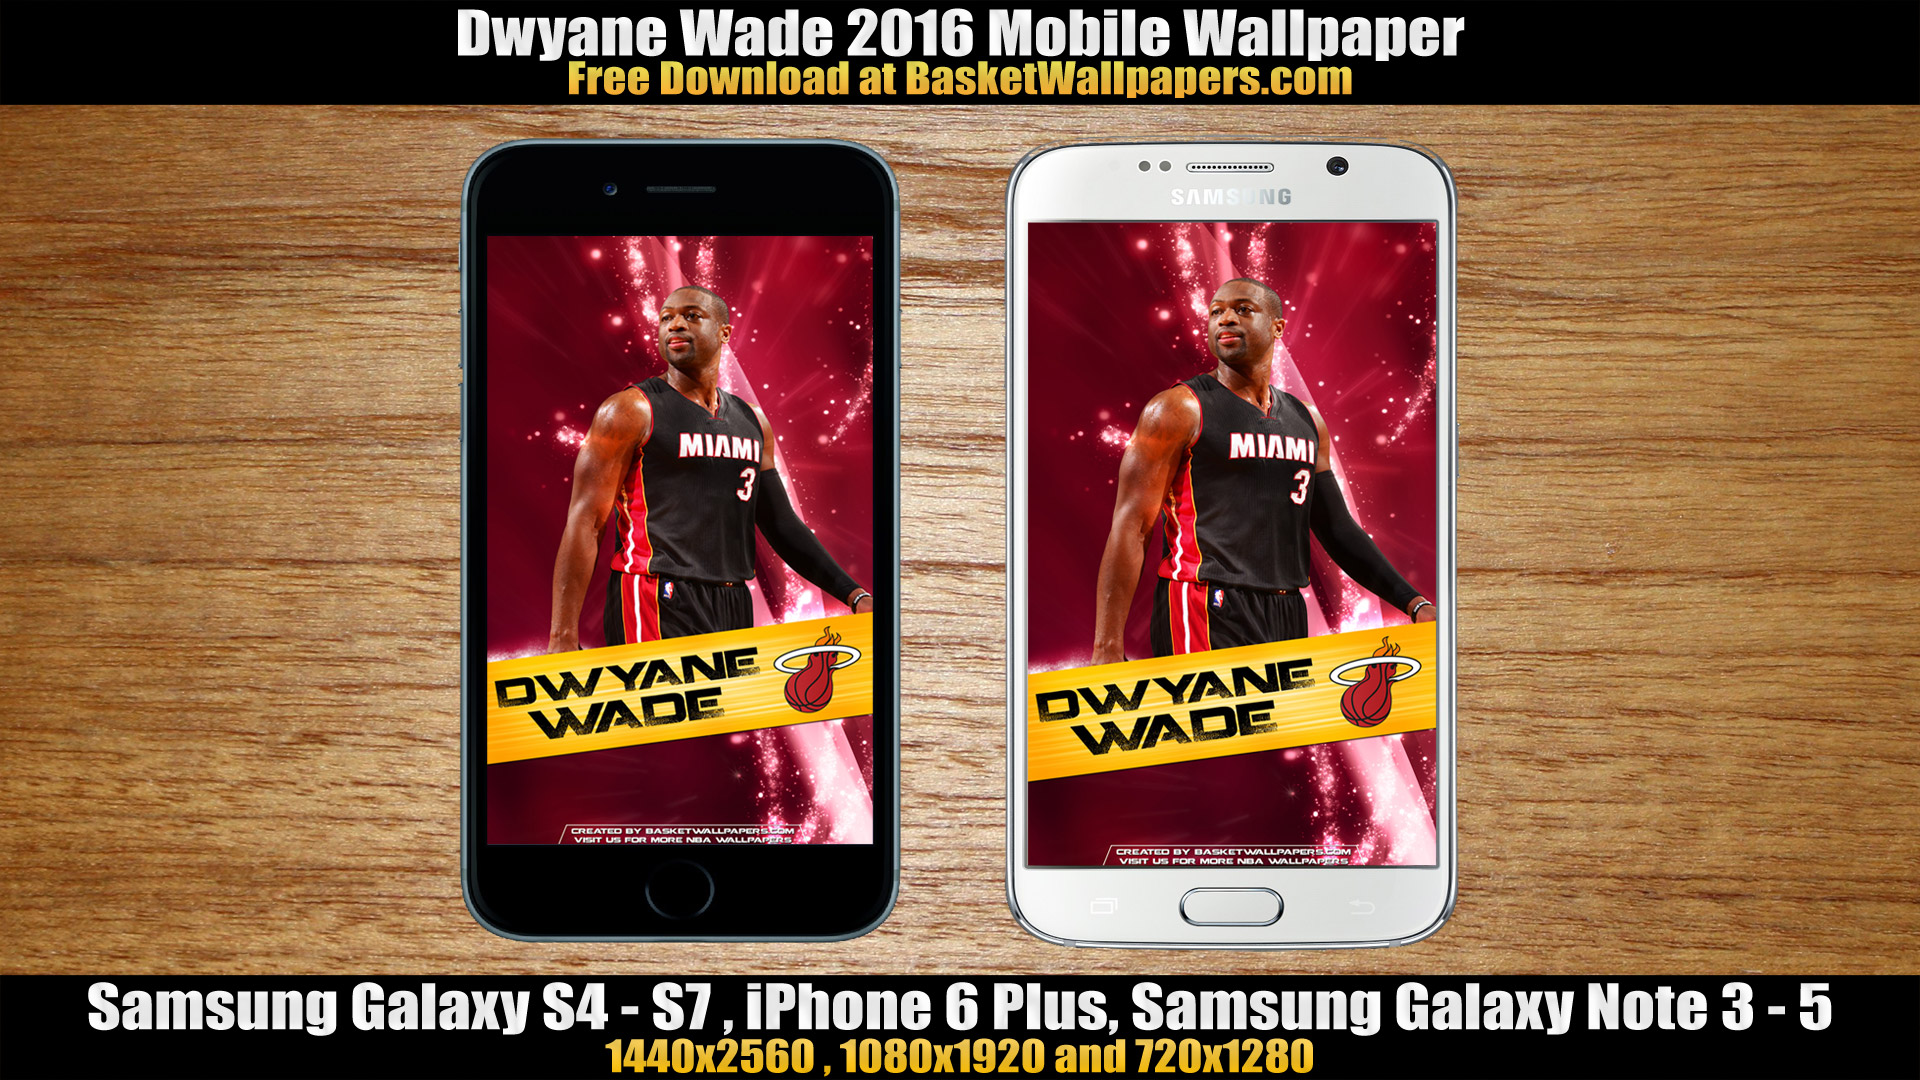 Dwyane Wade Miami Heat 2016 Mobile Wallpaper